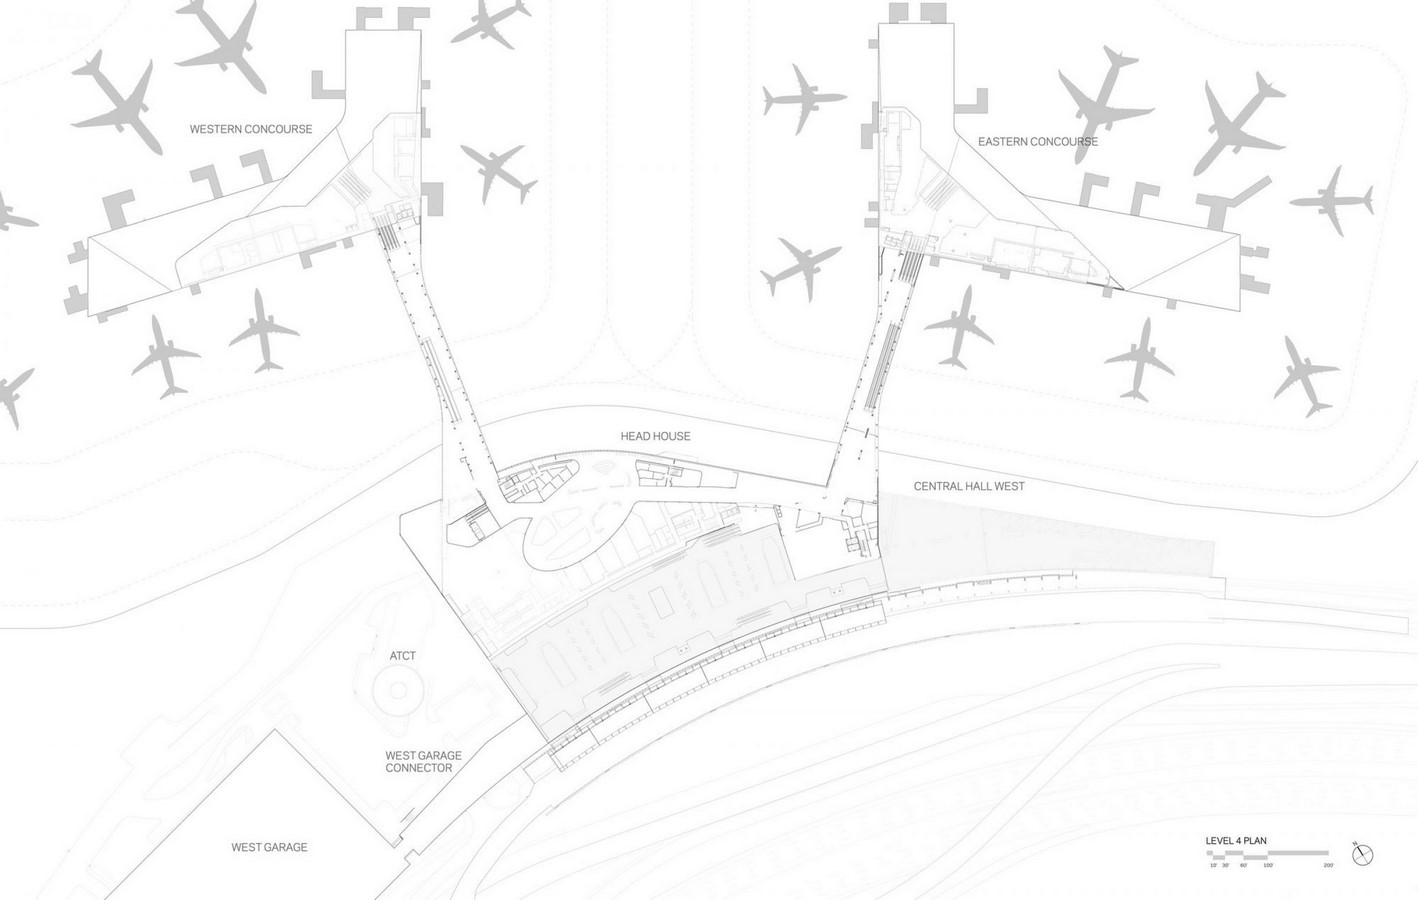 LaGuardia Airport by HOK: Advanced for it's time yet criticized - Sheet7